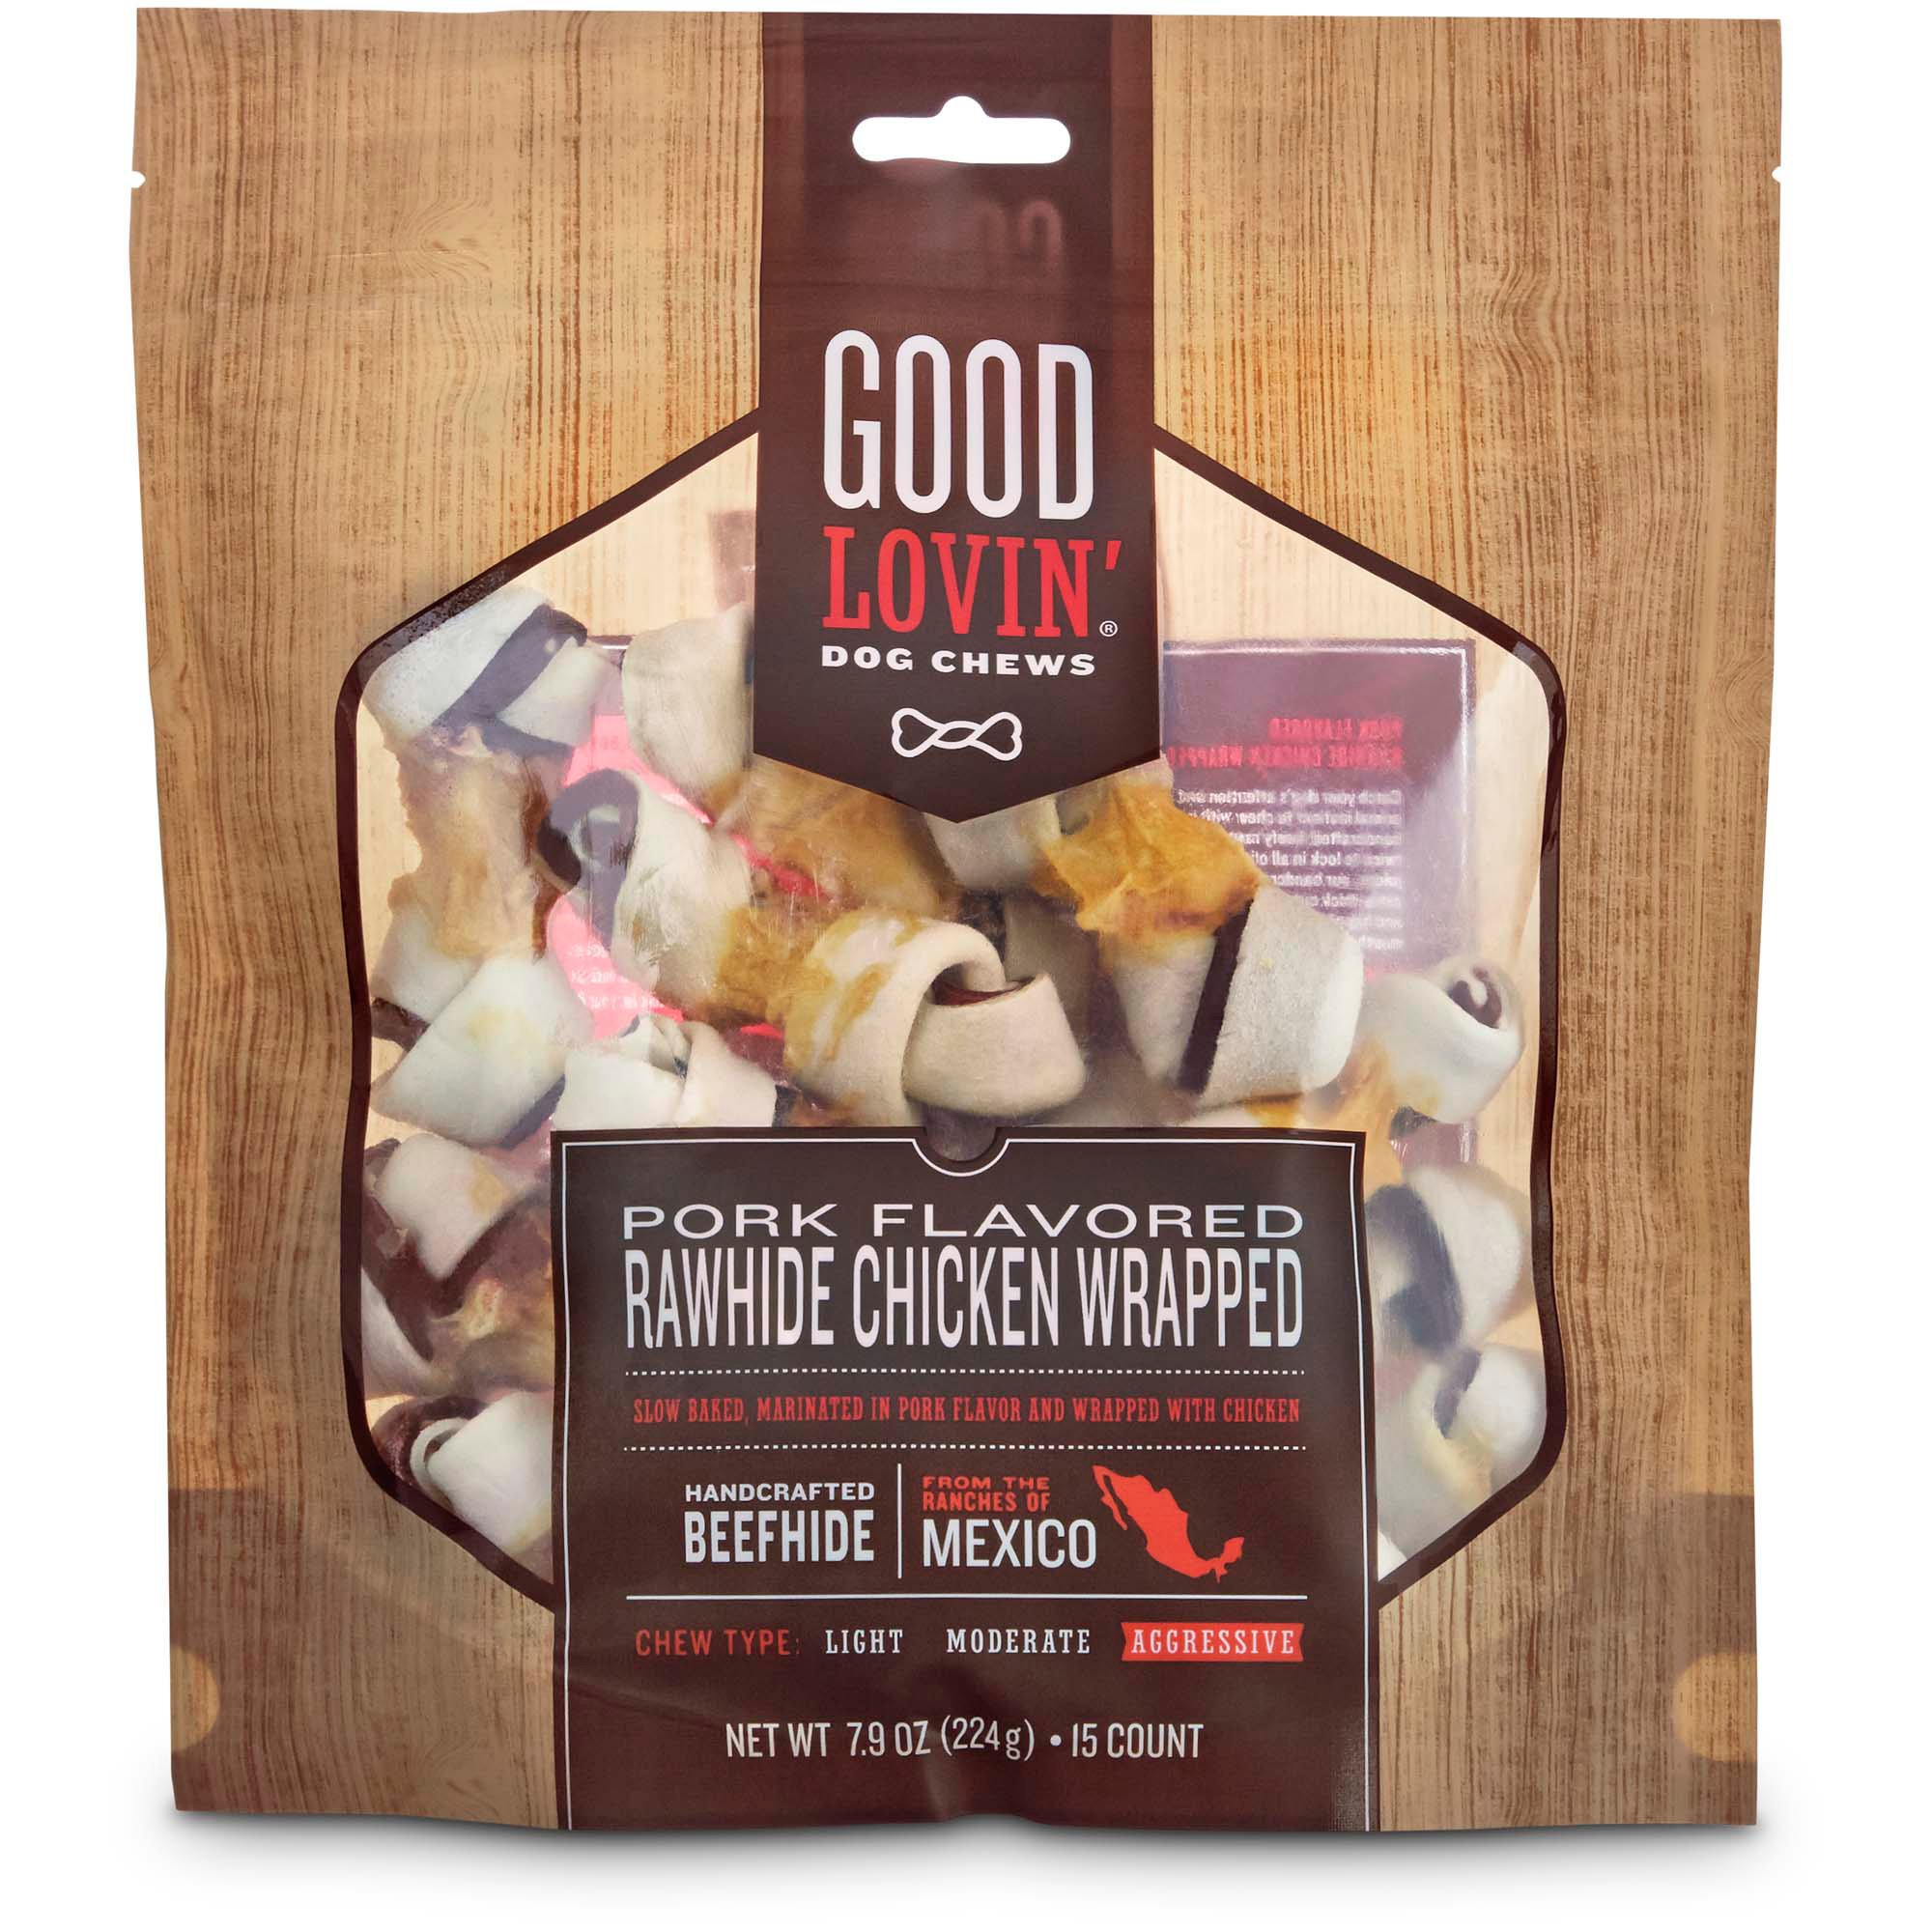 Good Lovin' Pork Flavored and Chicken Wrapped Rawhide Dog Chew, Pack of 3